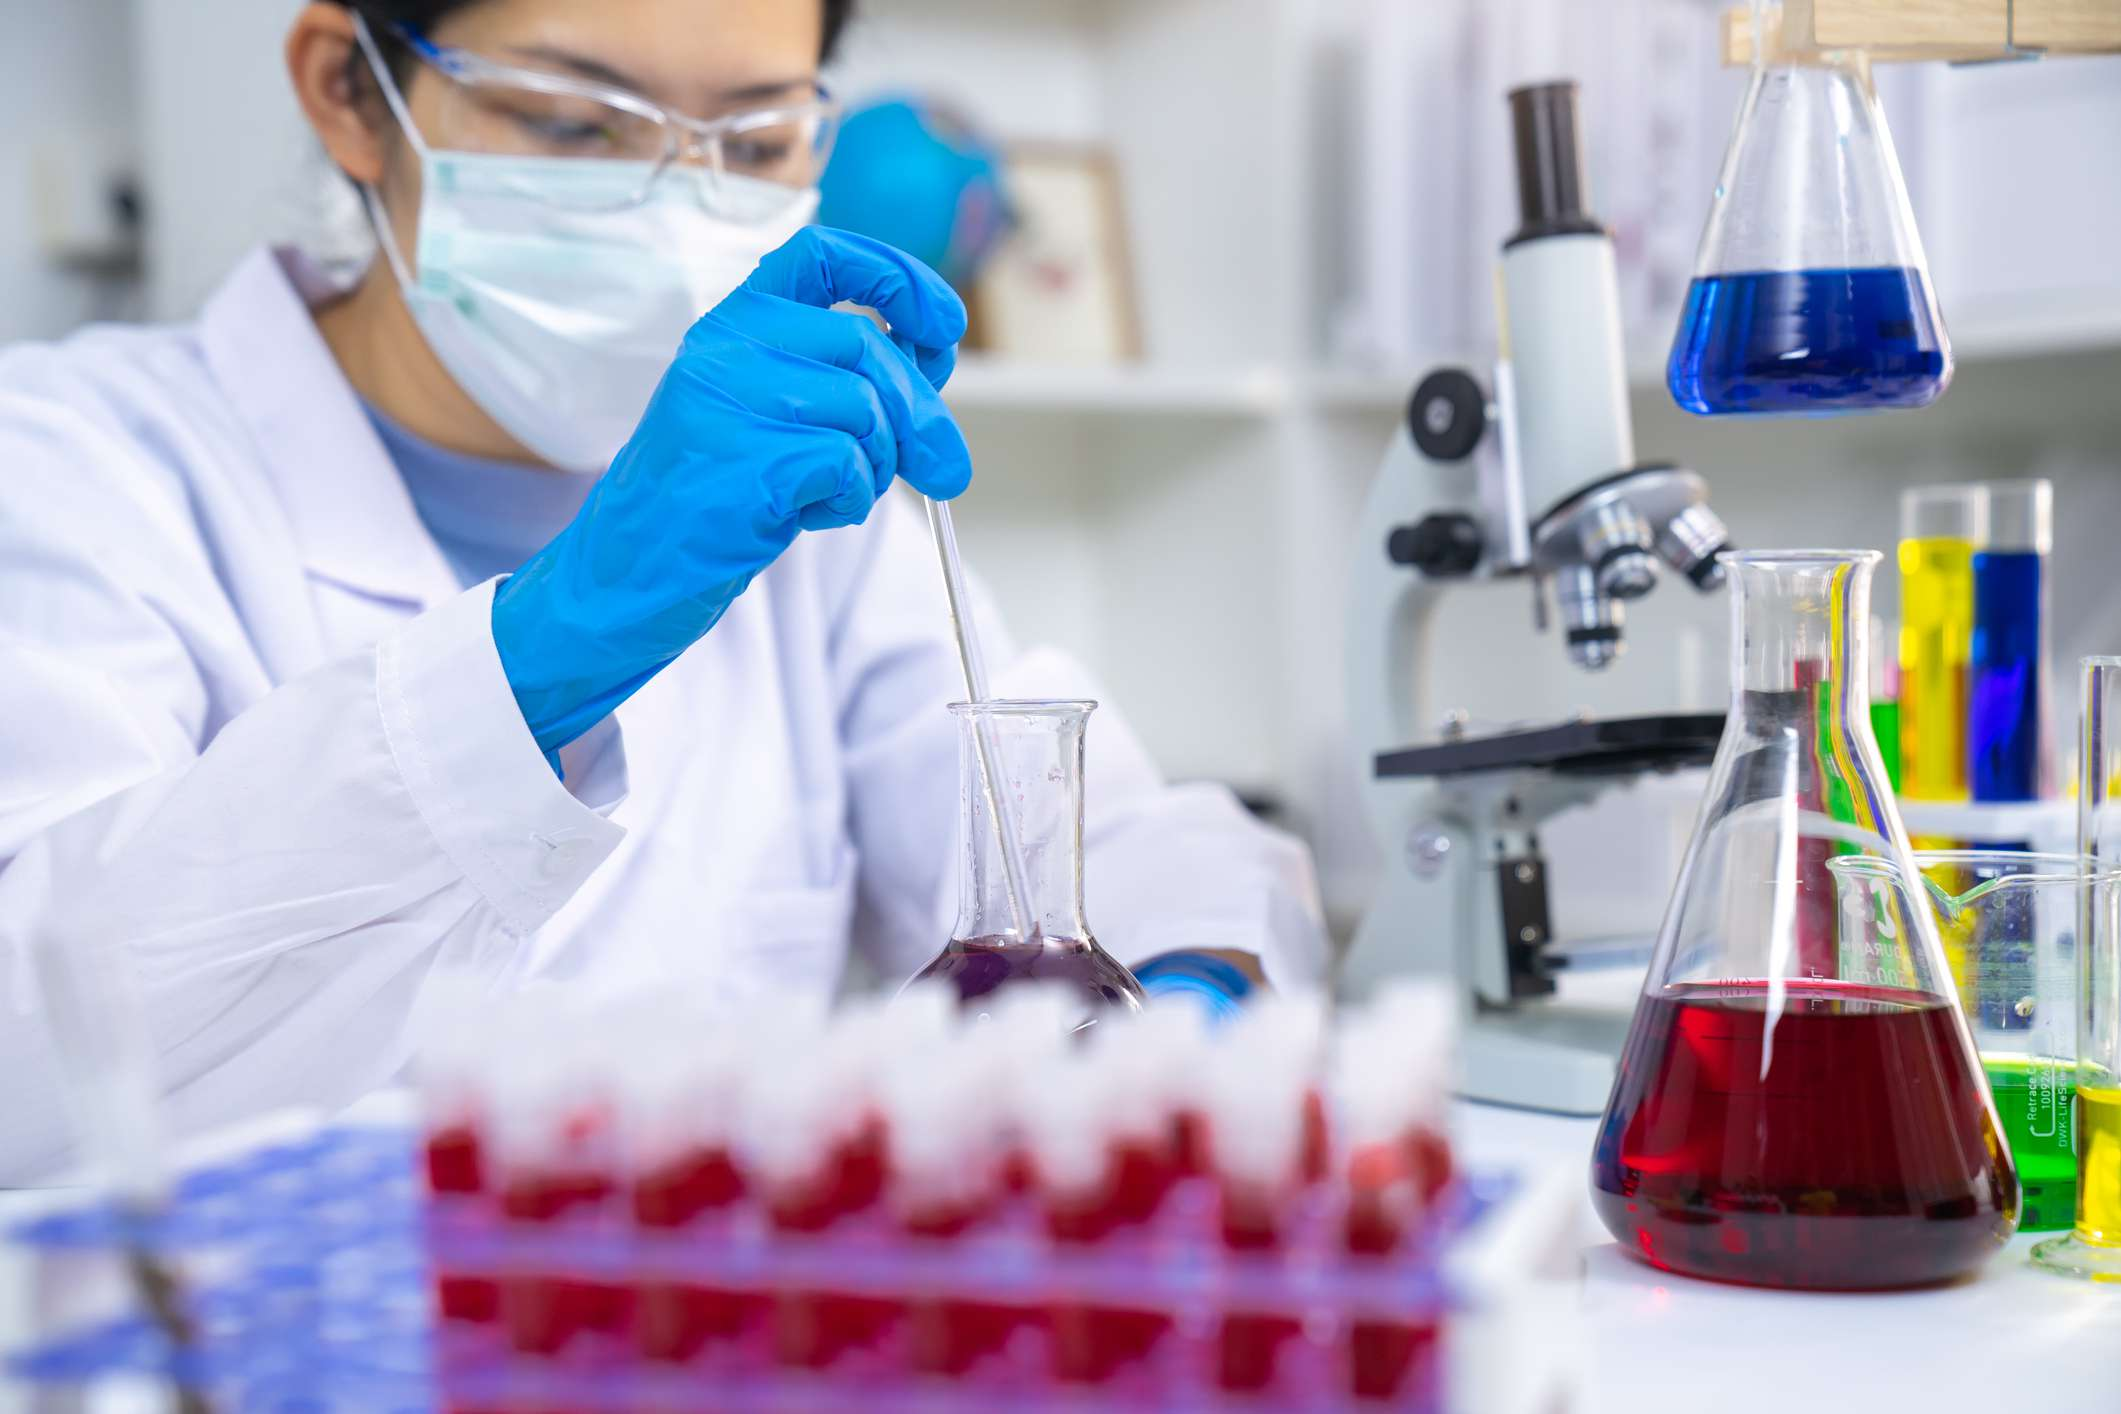 A lab technician prepares samples for polymerase chain reaction (PCR) testing.